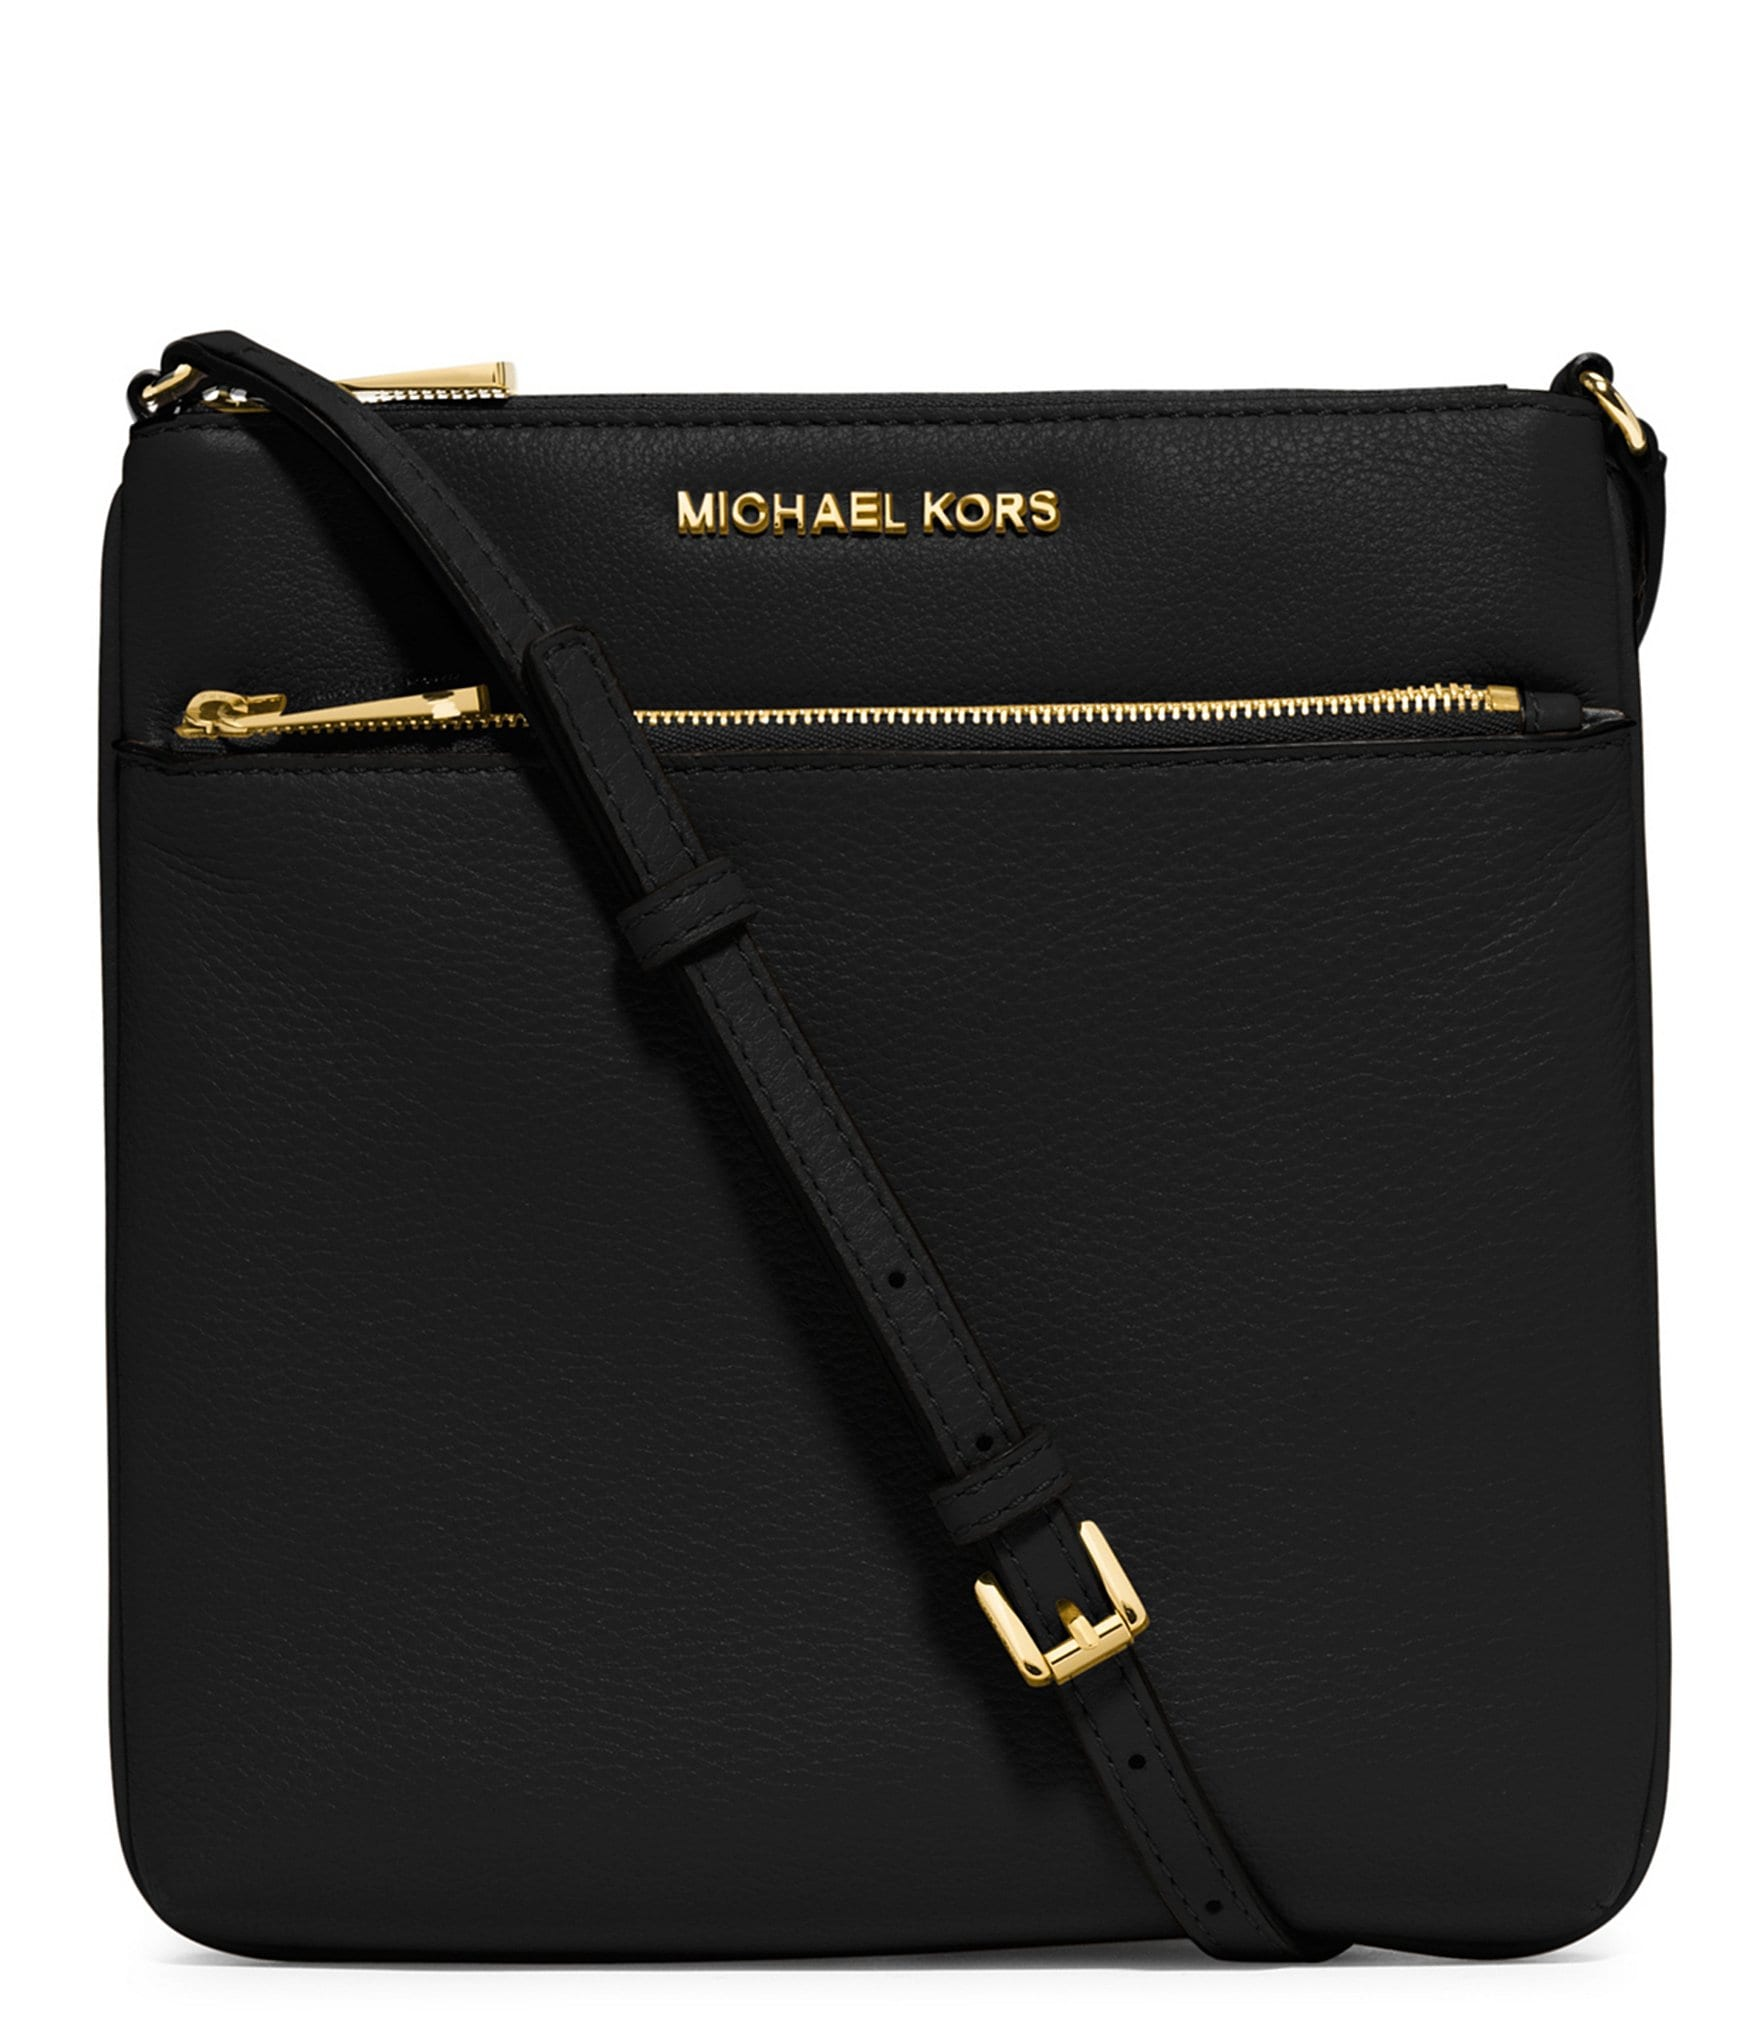 3077abf228ac michael kors black crossbody sale   OFF61% Discounted